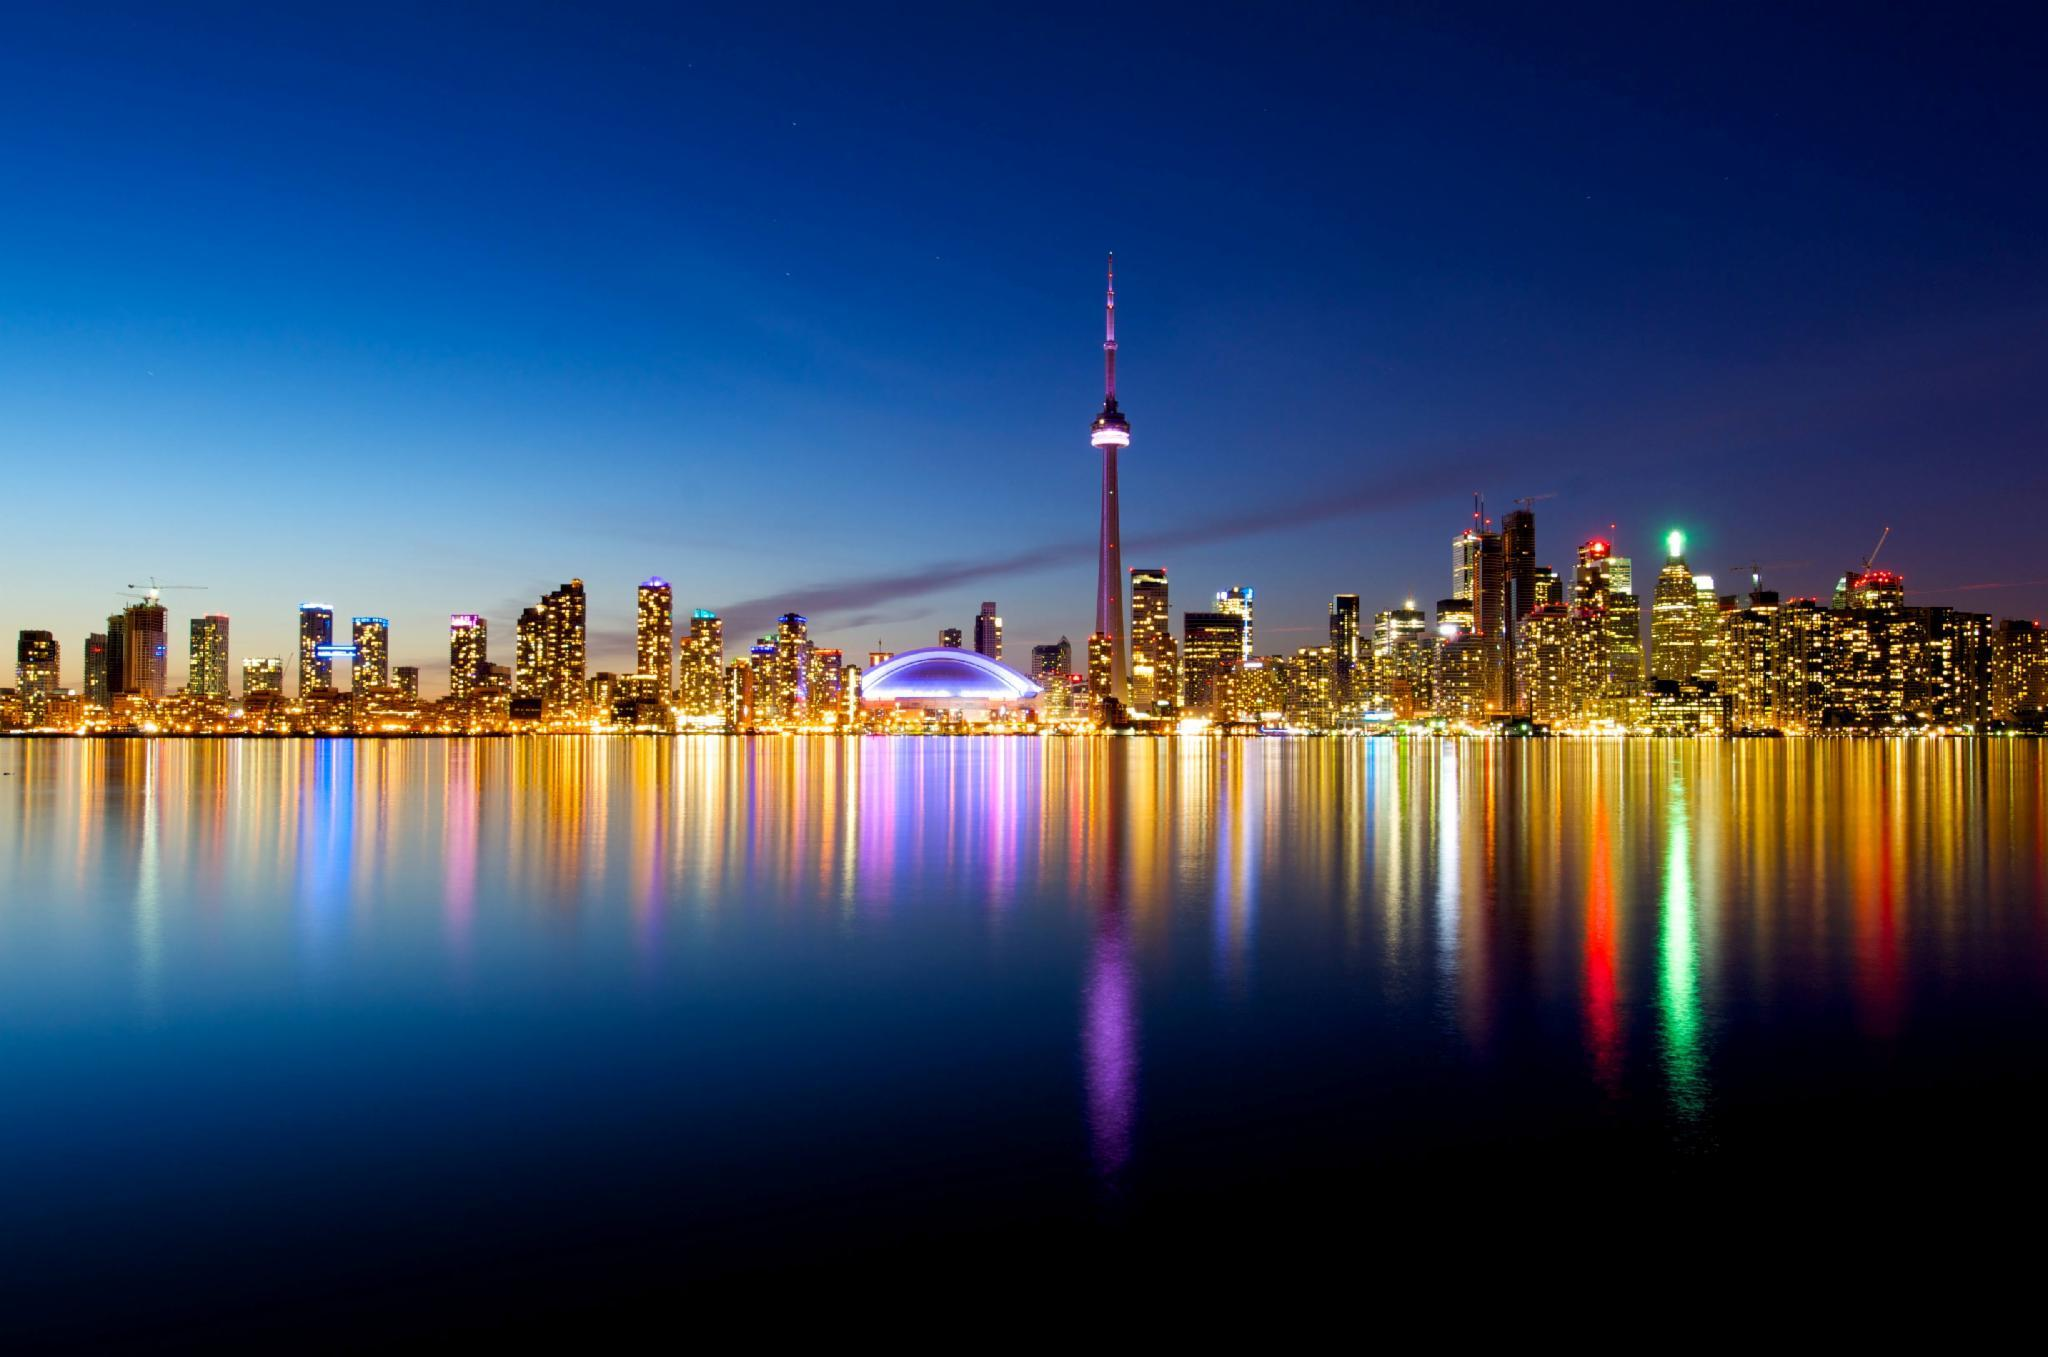 Have you ever been to Toronto?